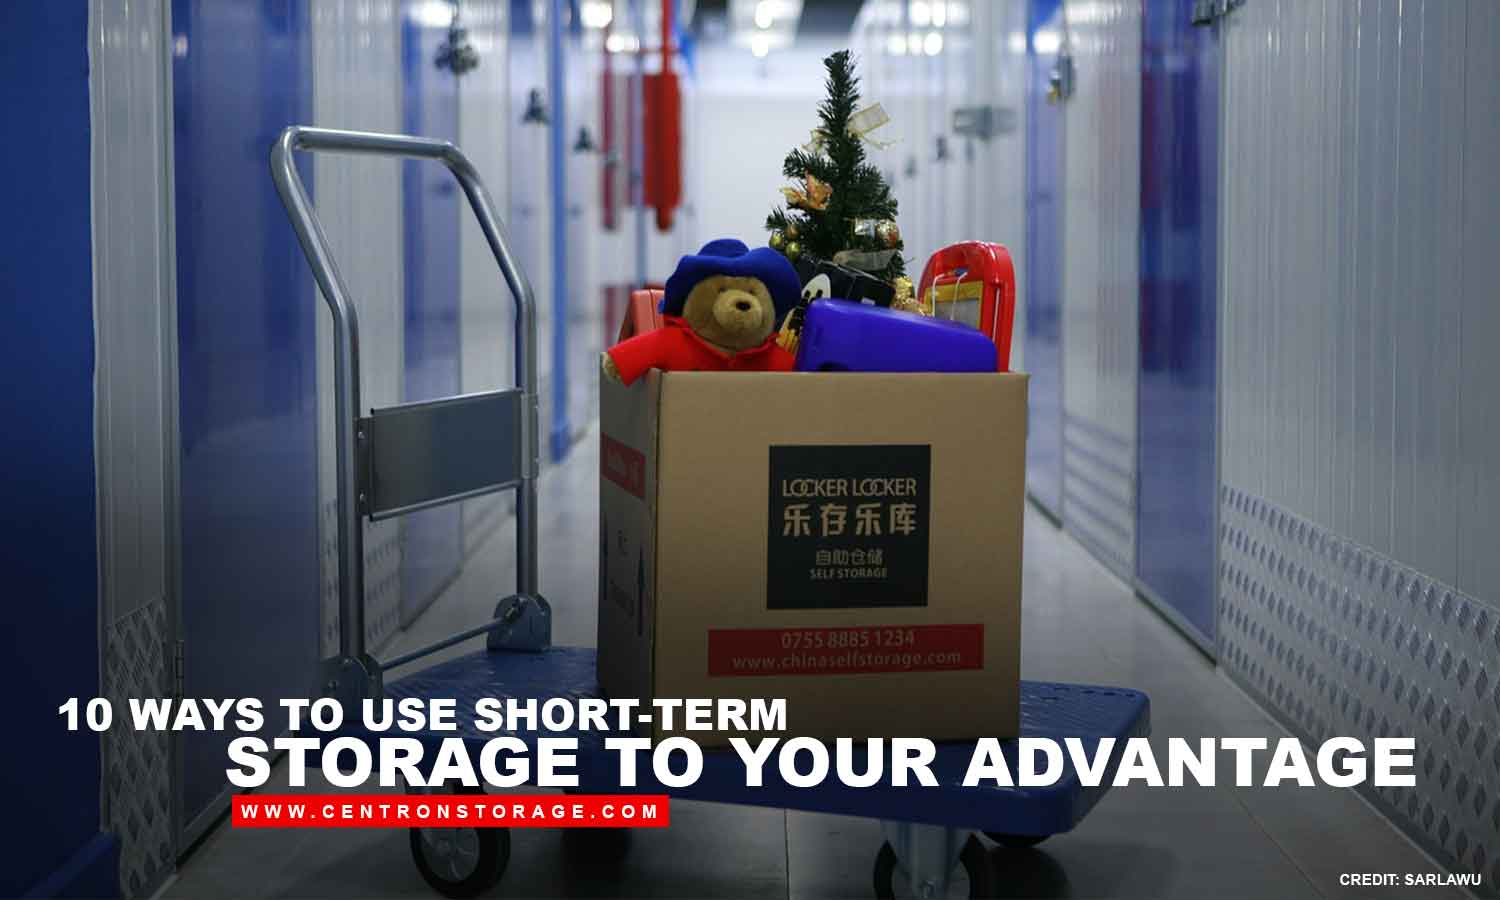 10 Ways To Use Short-Term Storage to Your Advantage